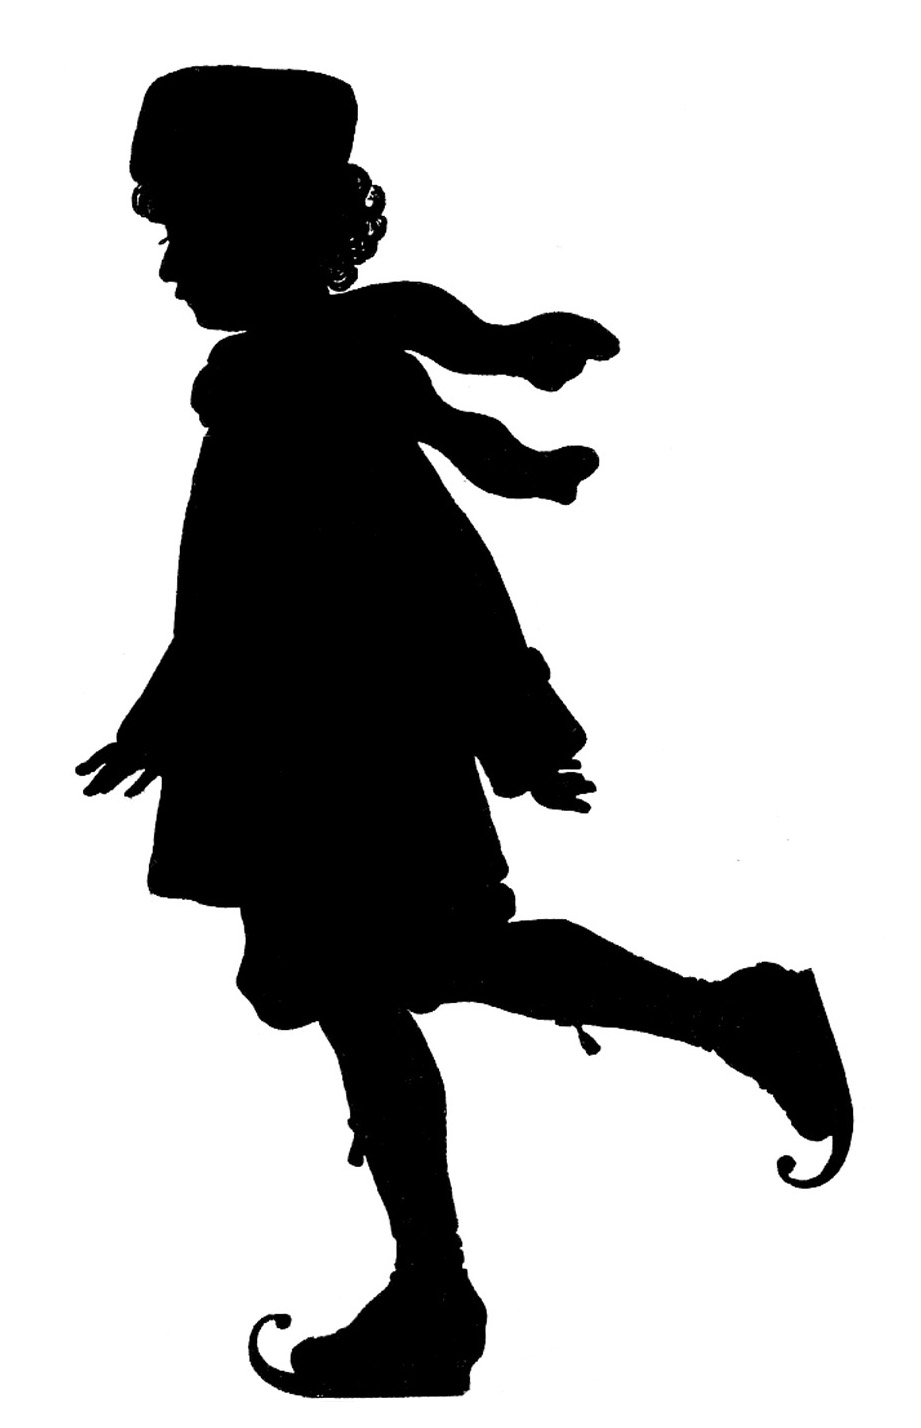 figure skater silhouette silhouettes boy and girl ice skating the graphics fairy skater silhouette figure